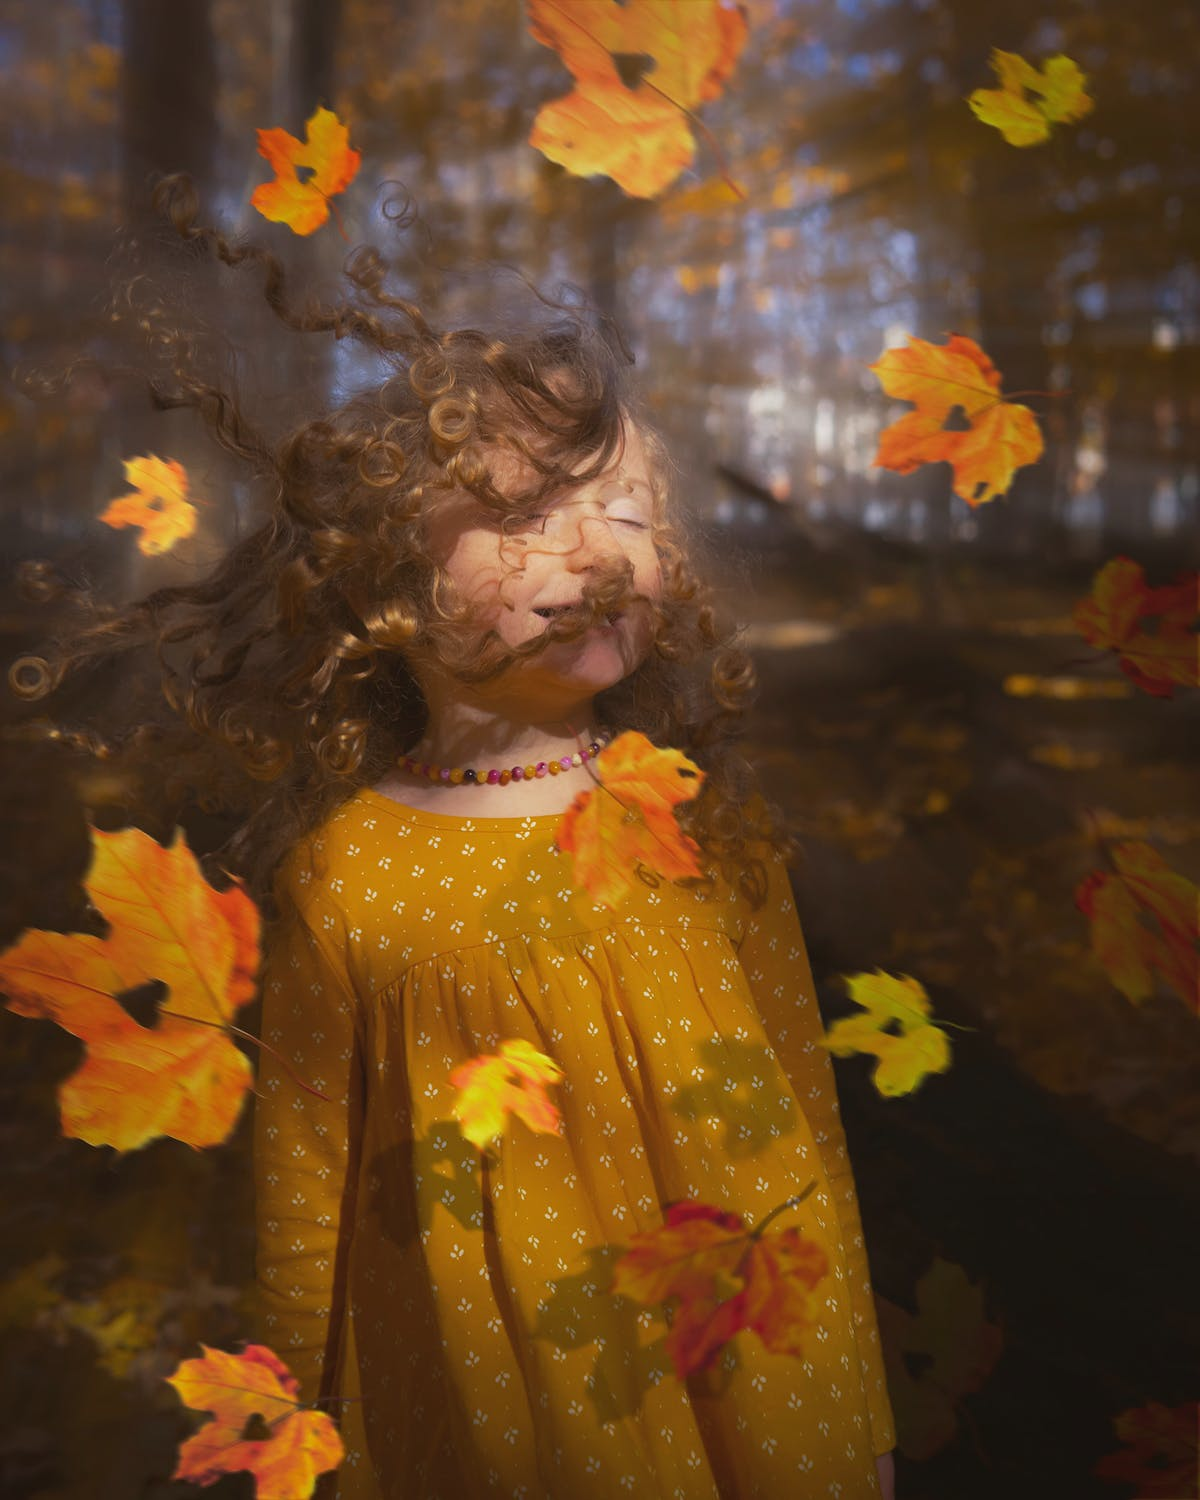 10 Ways to Embrace Fall Over Summer Beauty of Leaves